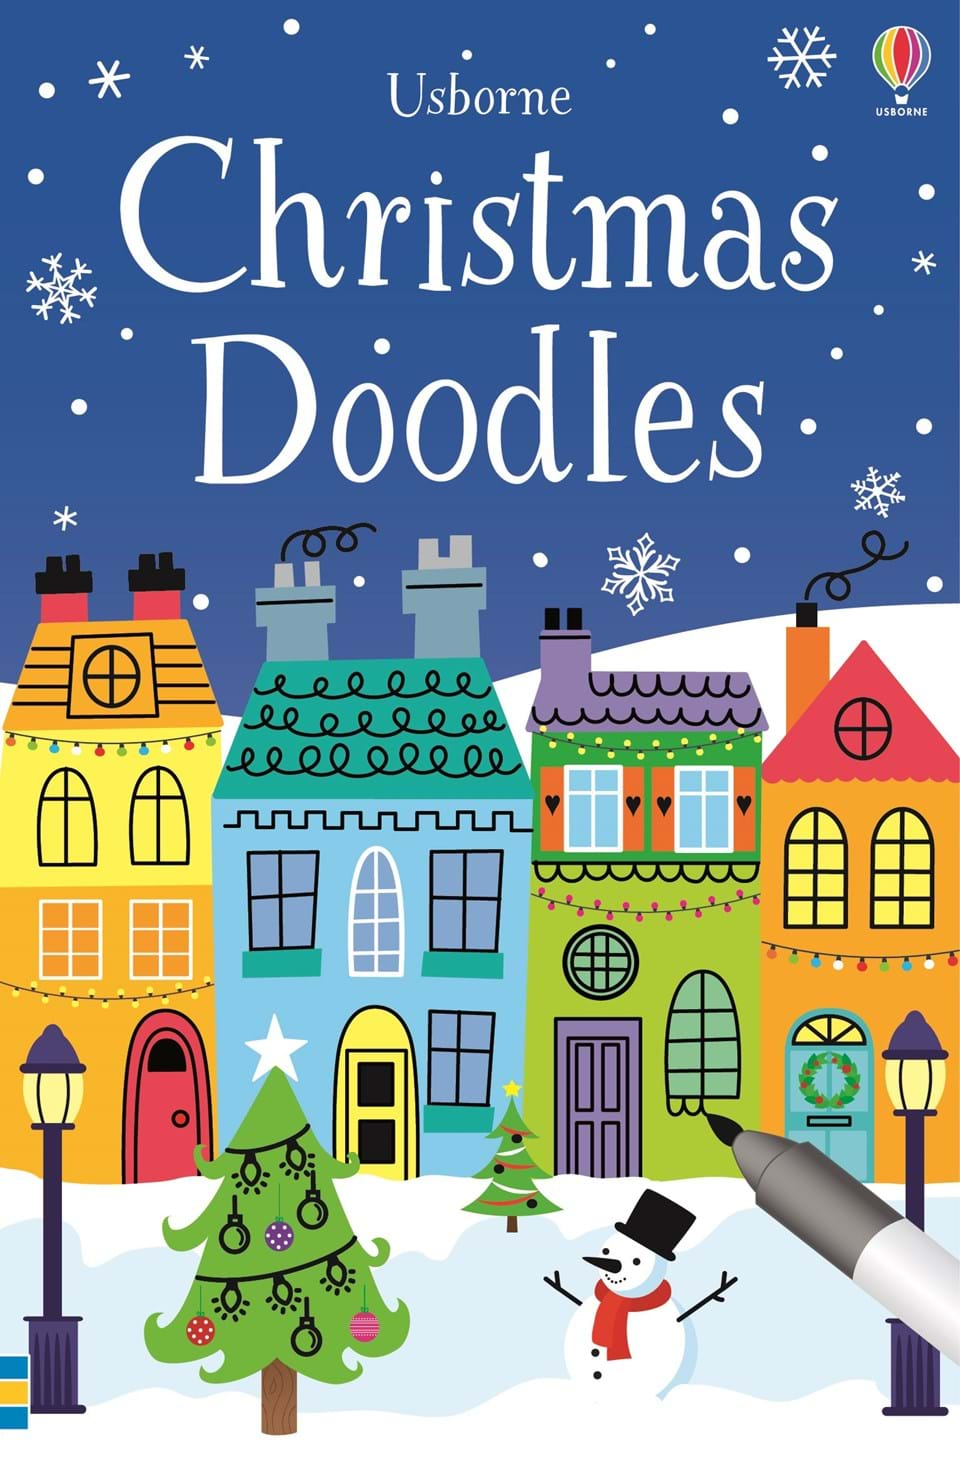 Christmas doodles at Usborne Children s Books